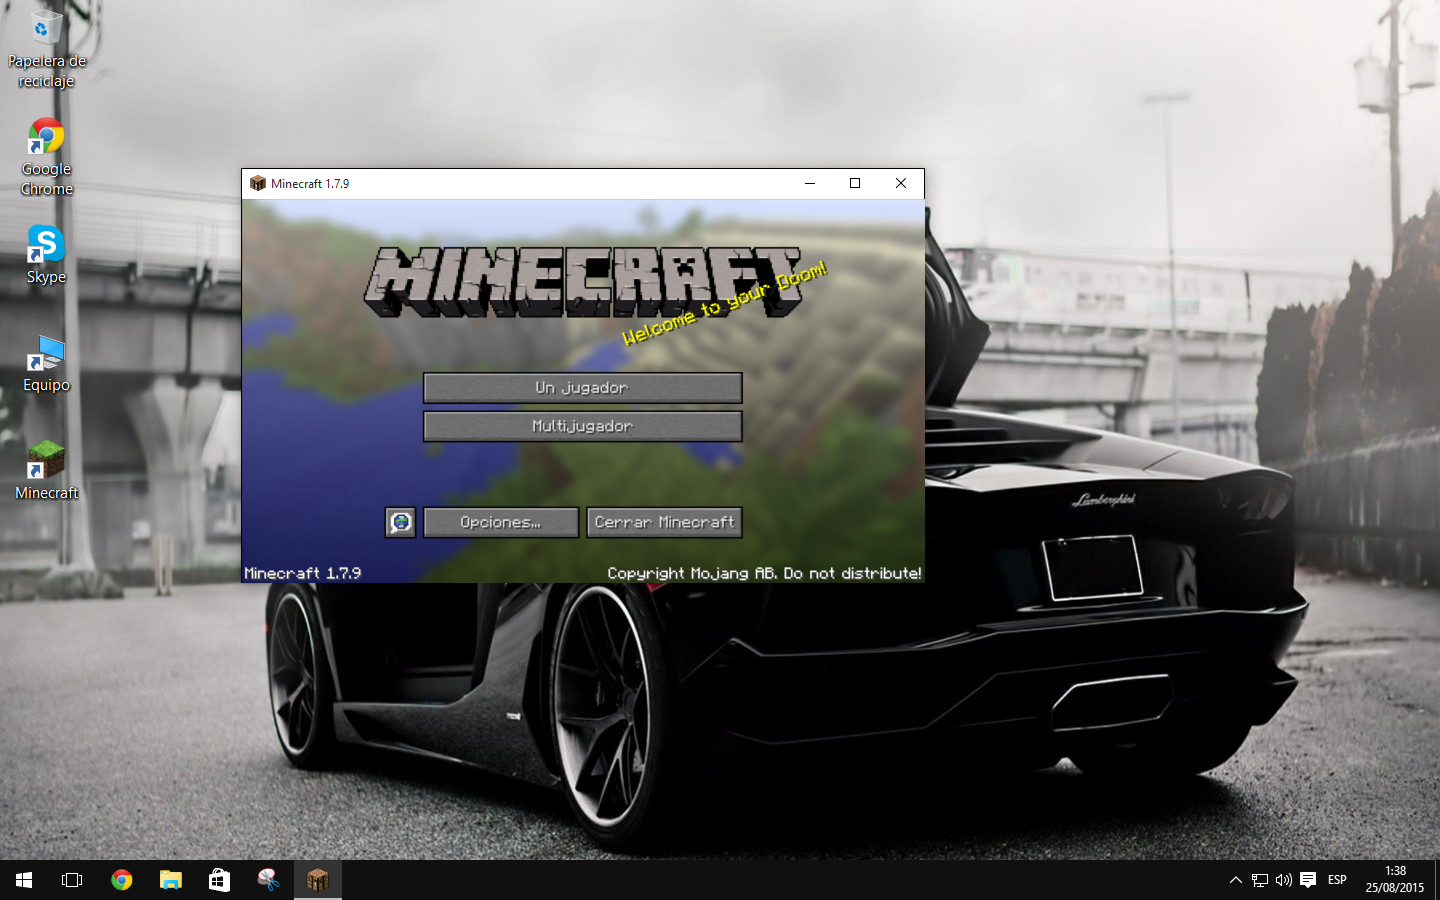 i have problems to start the minecraft in windows 10 unmodified